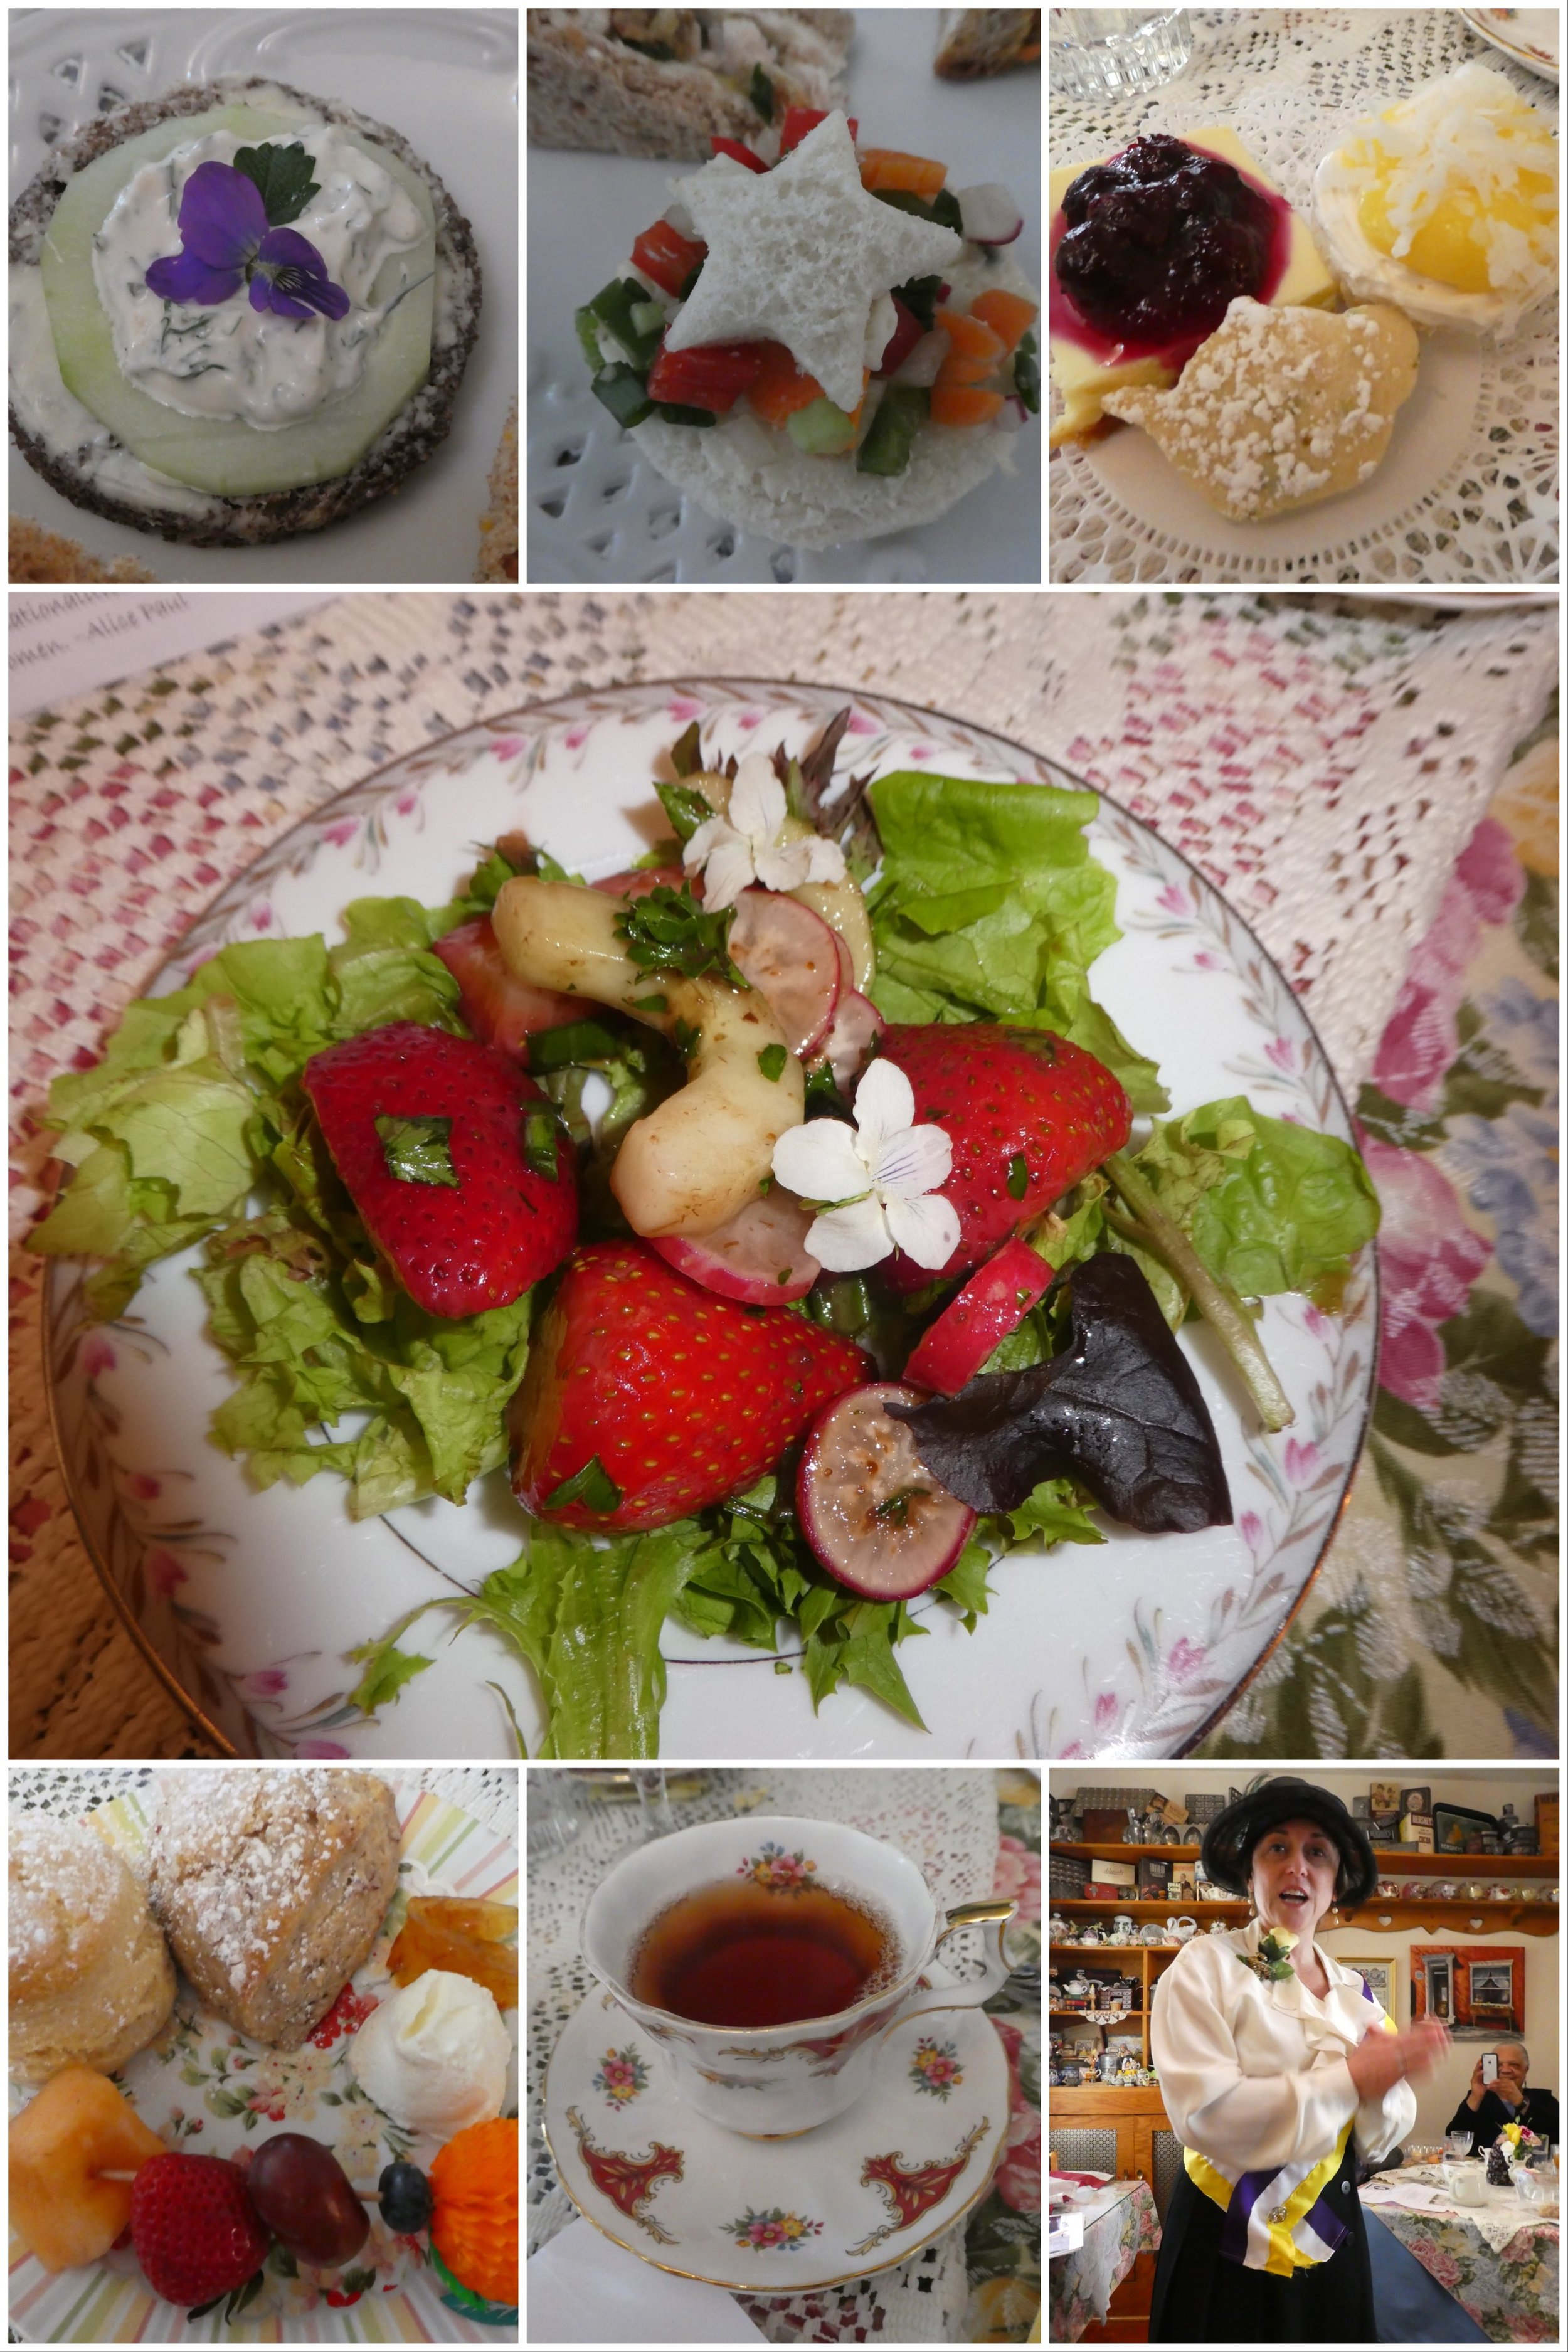 Yummy tea, scones, salad, and tea sandwiches were enjoyed by all. . . Even our honored Woman of History . . . Alice Paul